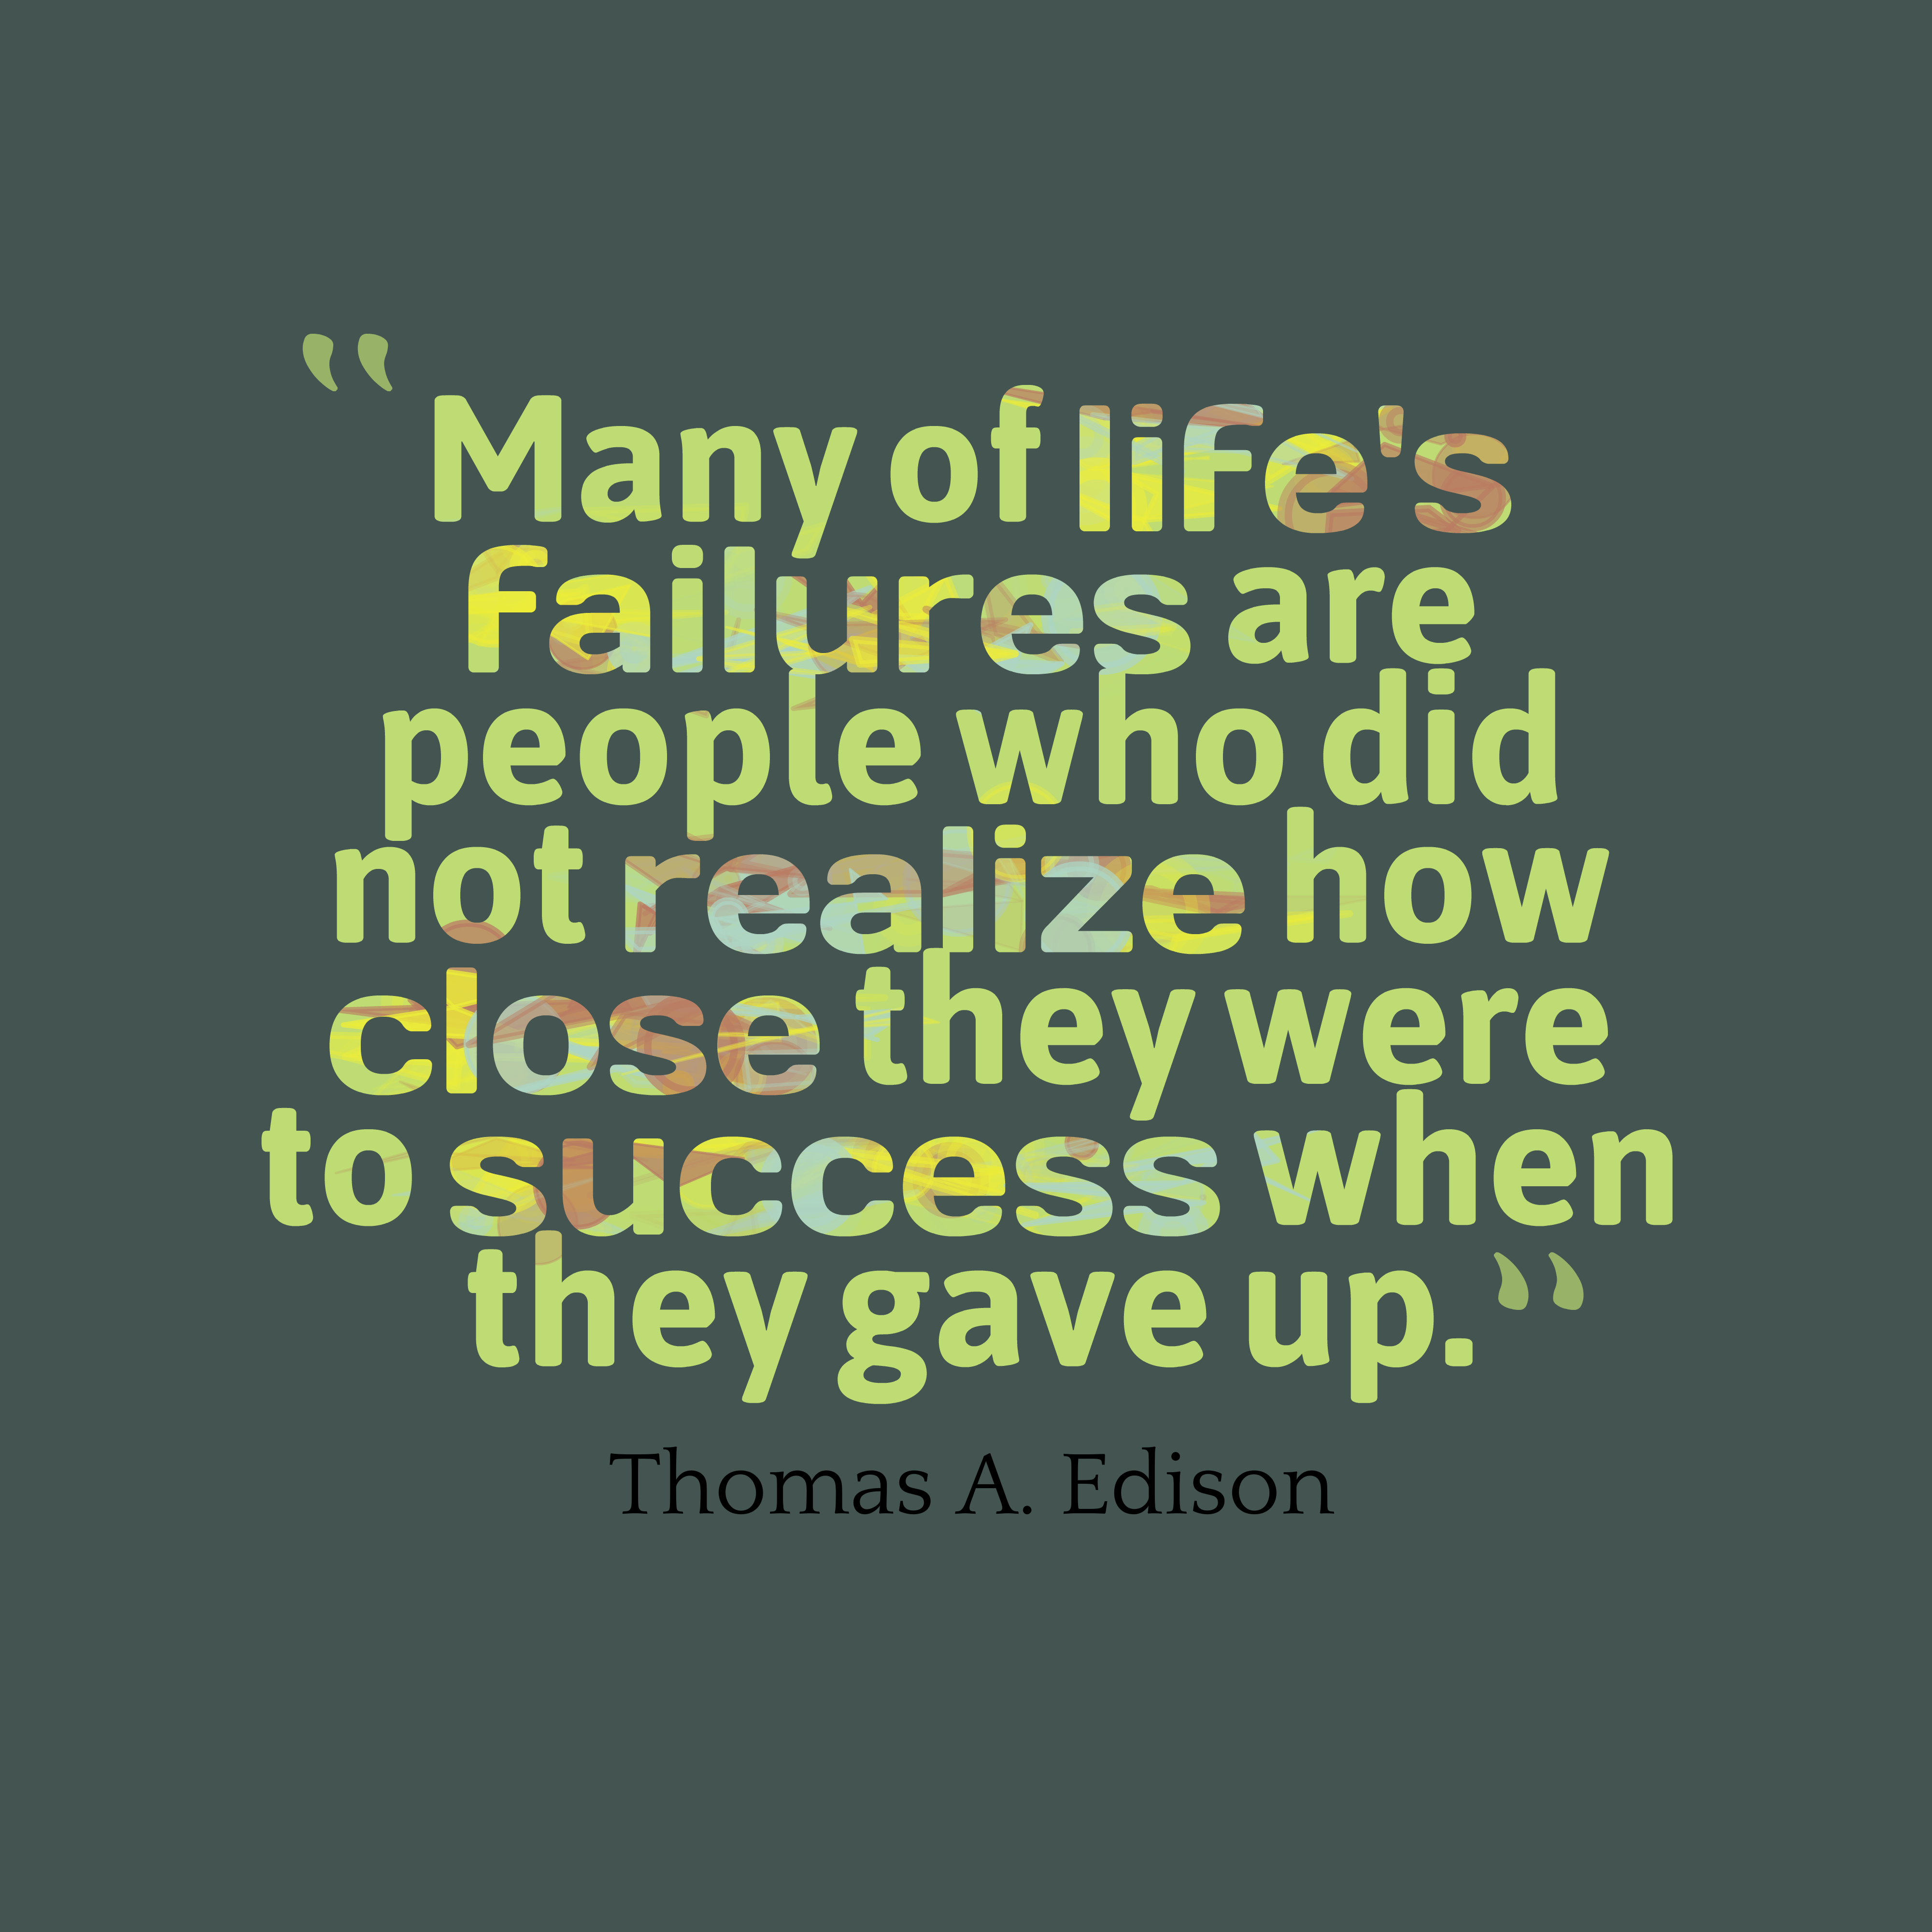 Thomas A Edison Quote About Failure